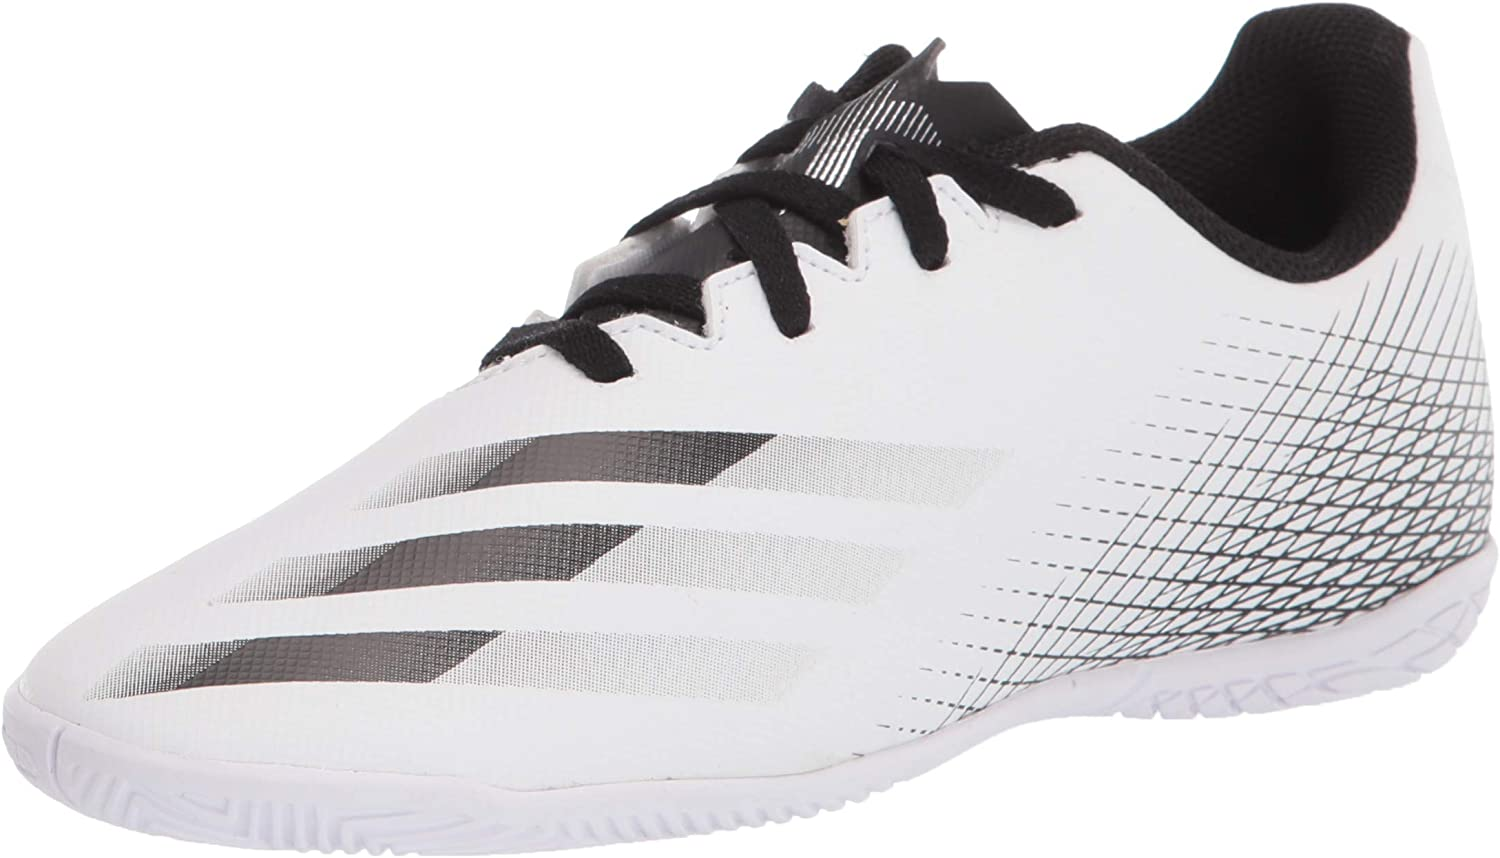 adidas Kids Boys X Ghosted.4 Cleats Ranking TOP14 Soccer Bla Indoor - Our shop most popular